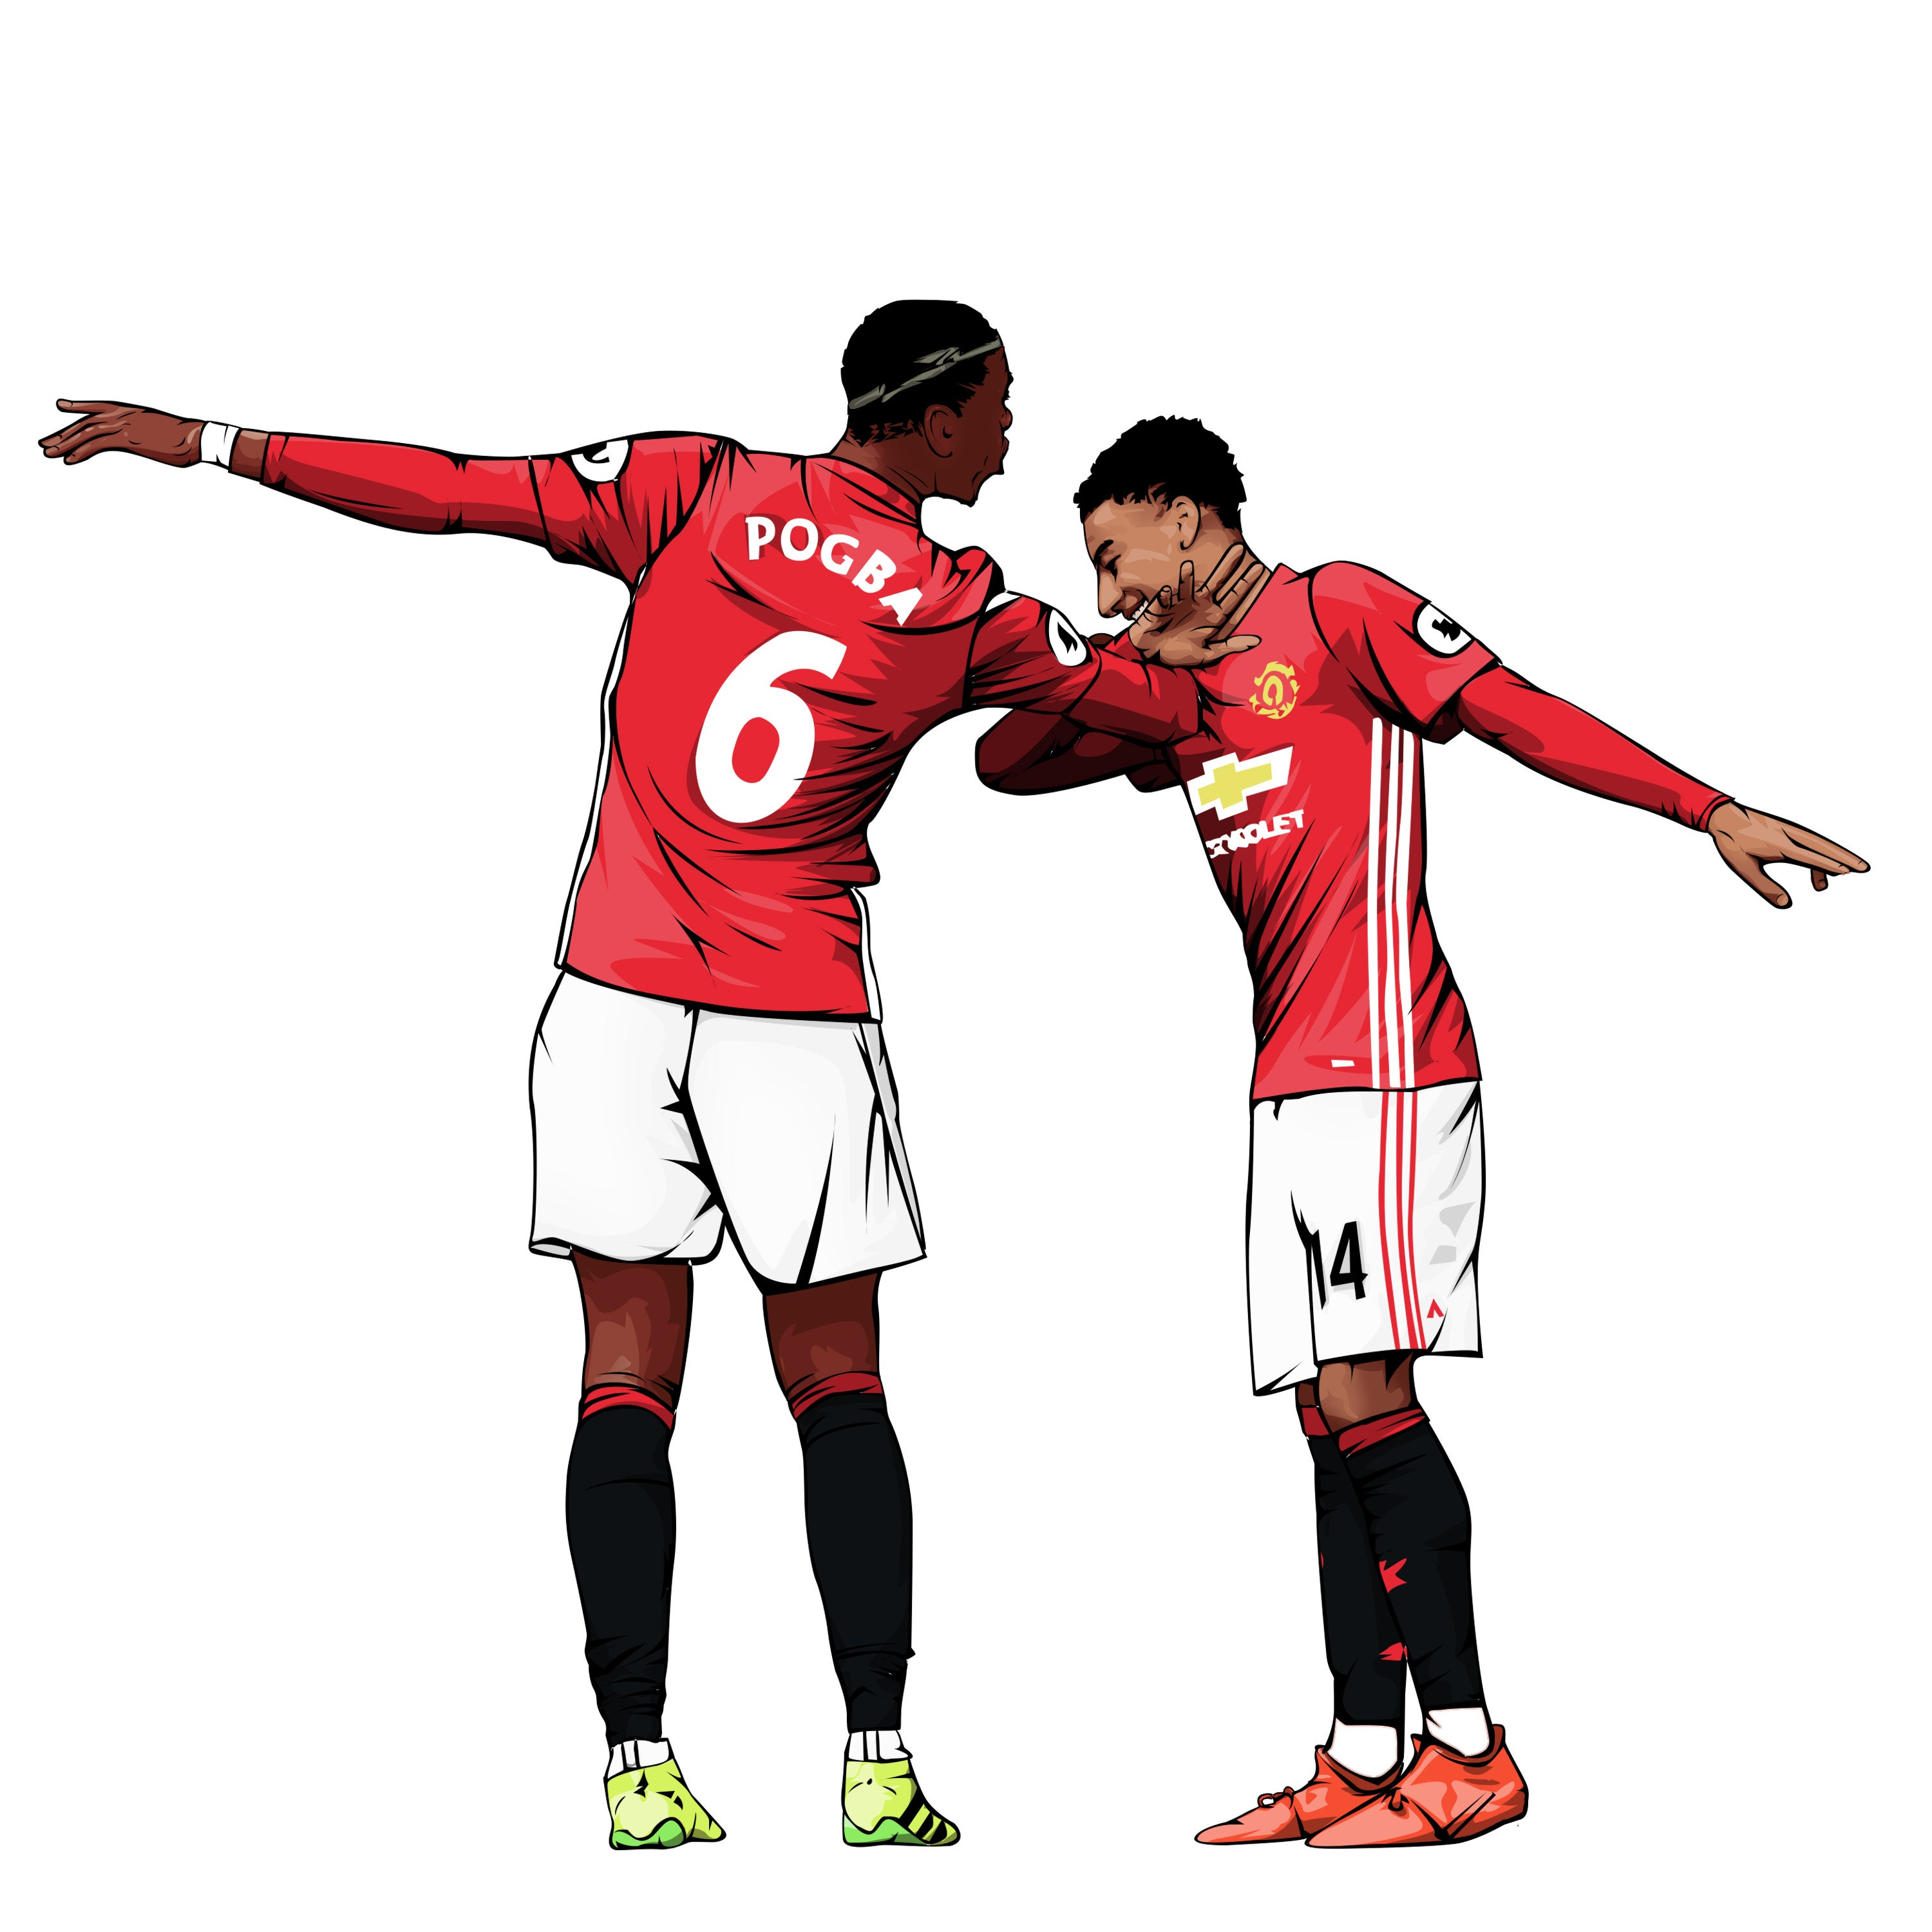 Pogba & Lingard Dab Celebration / The Soccer Suite